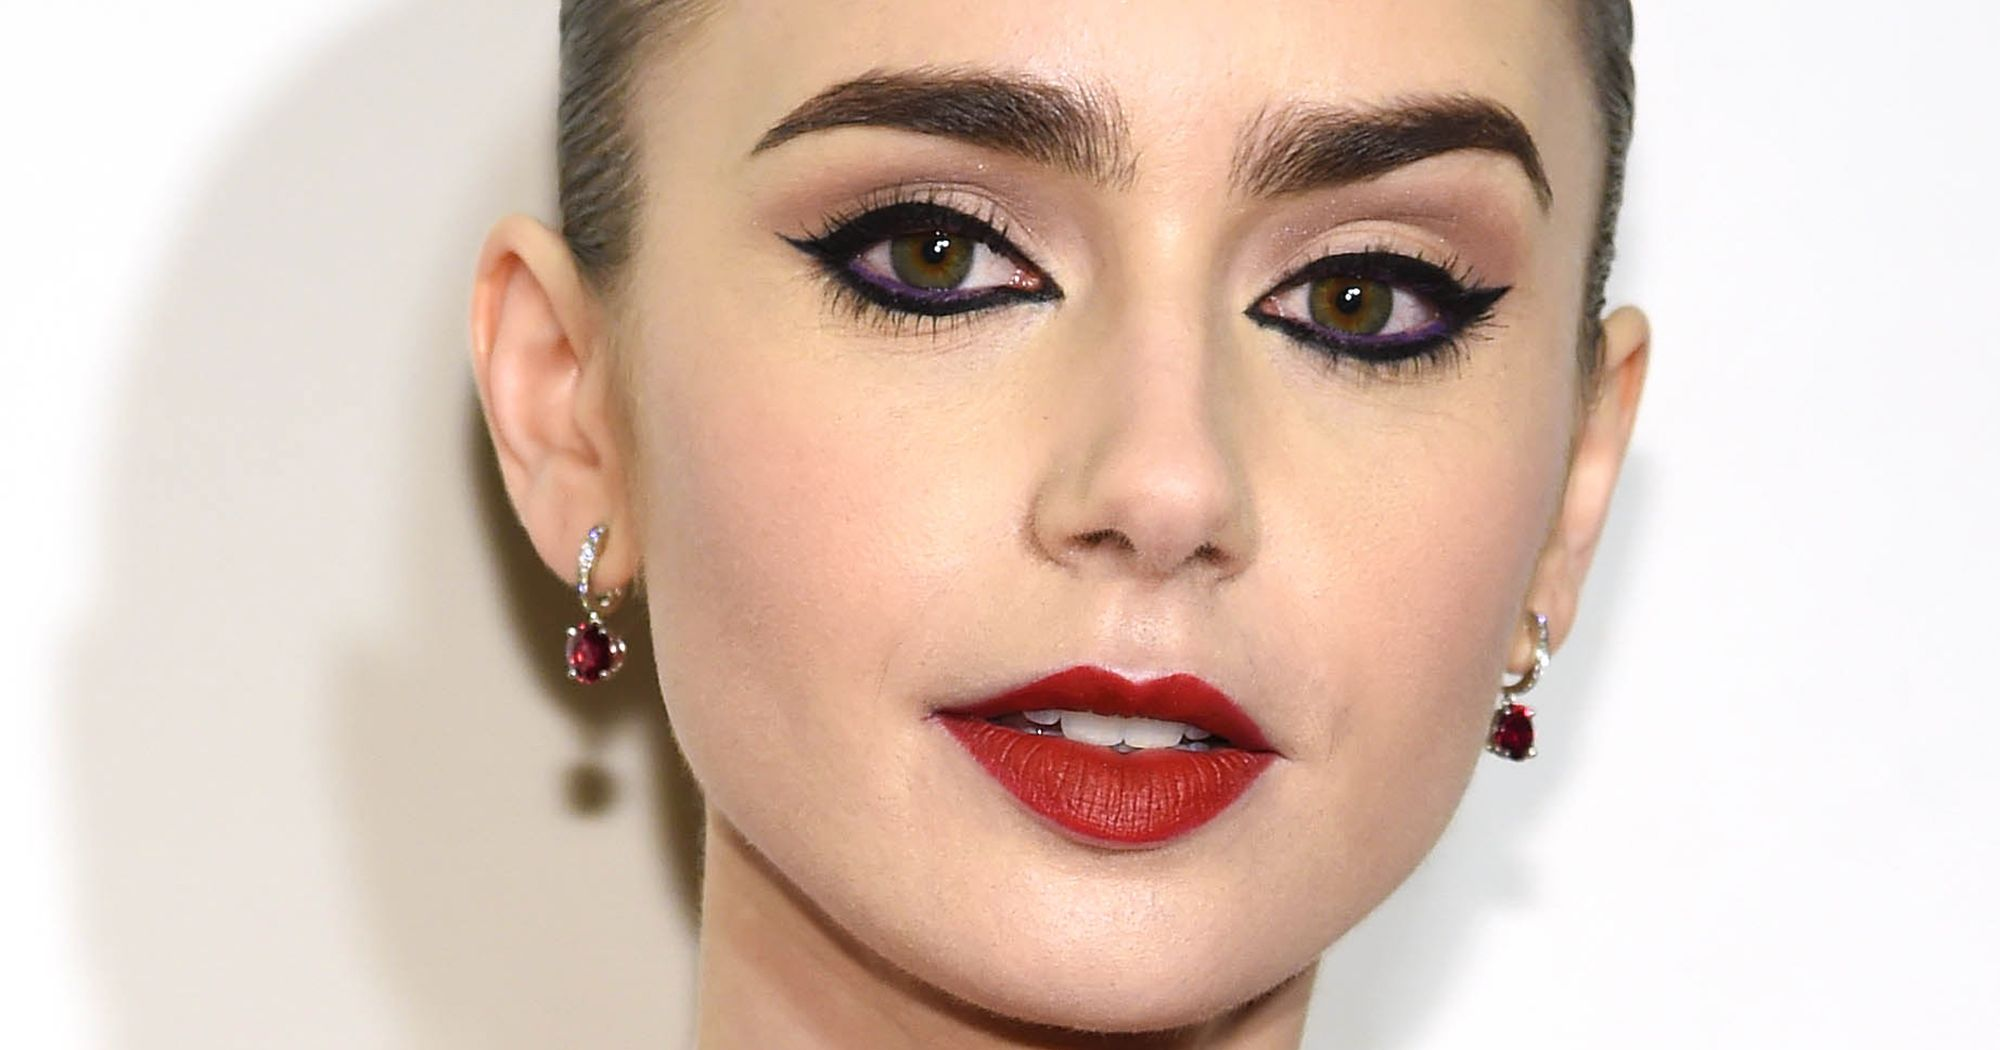 Makeup to look like celebrities